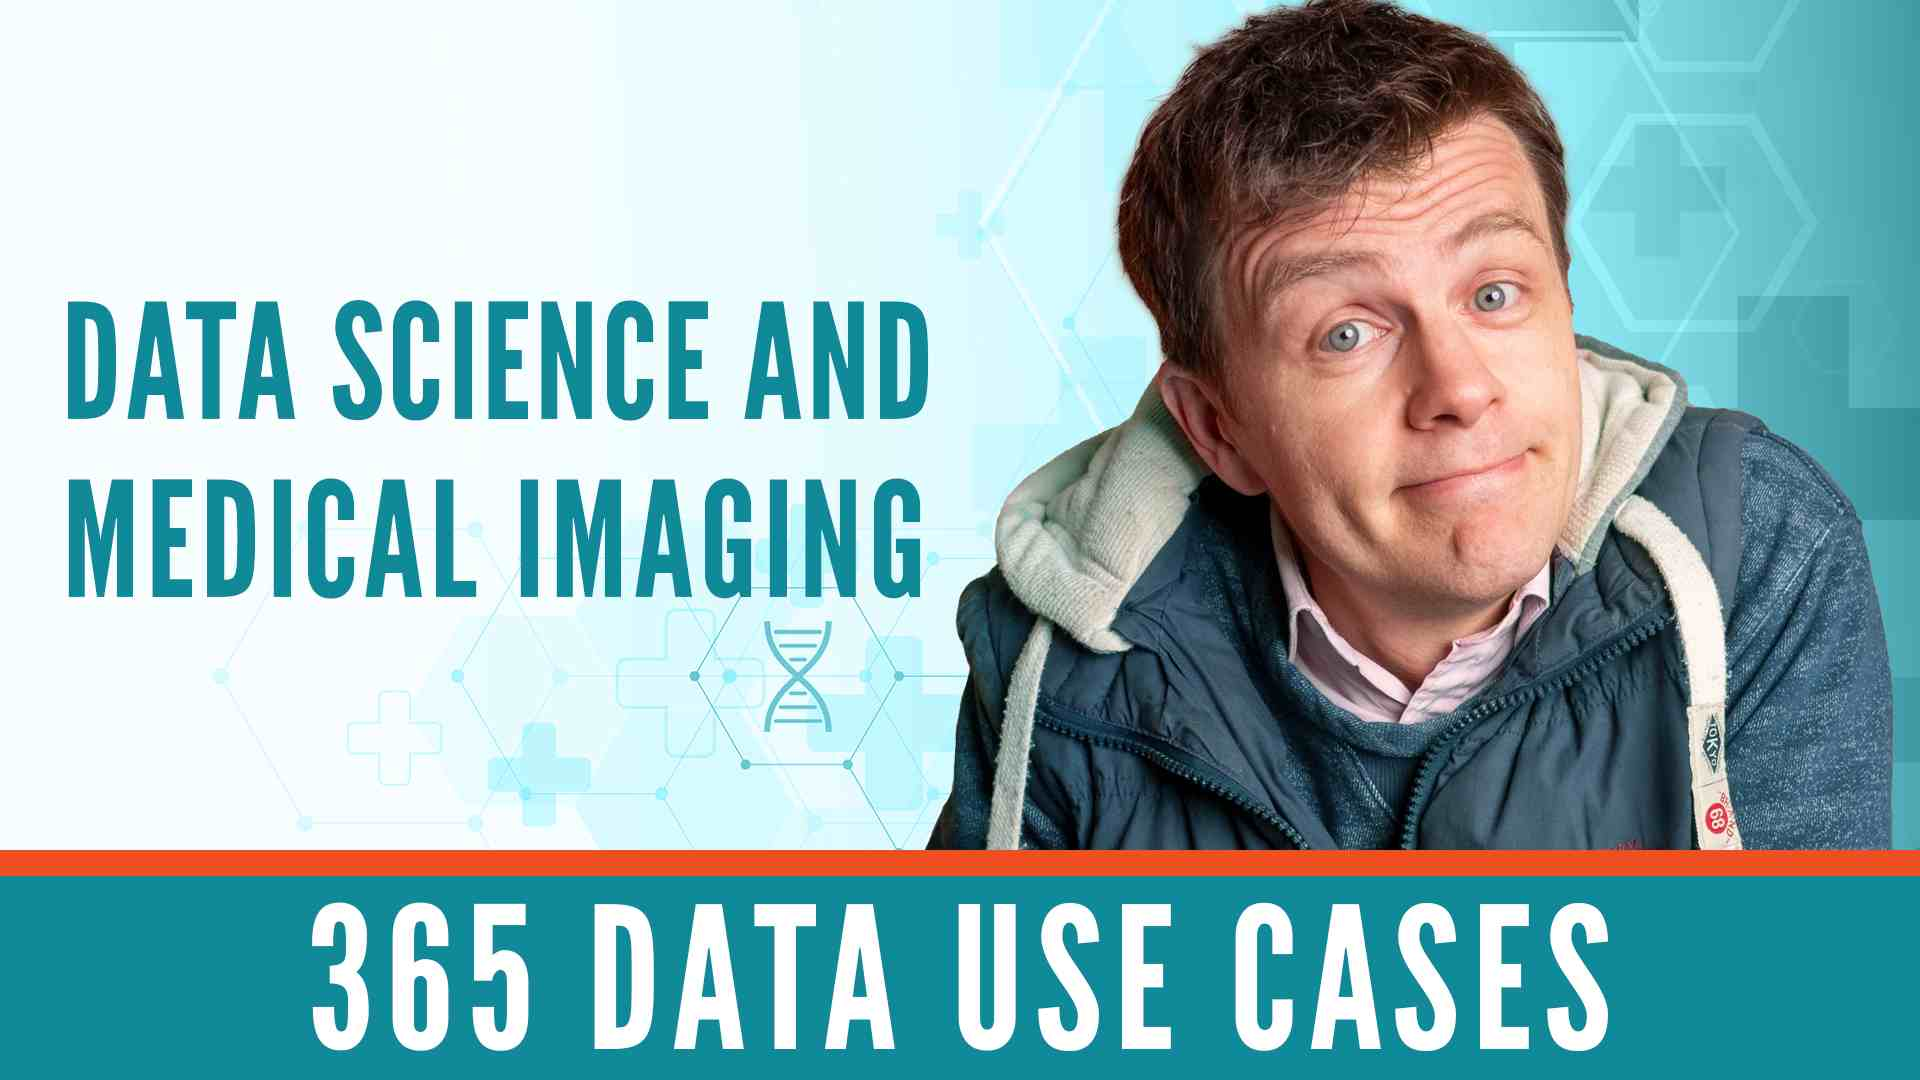 Data Use Cases: Advanced medical imaging with Giles